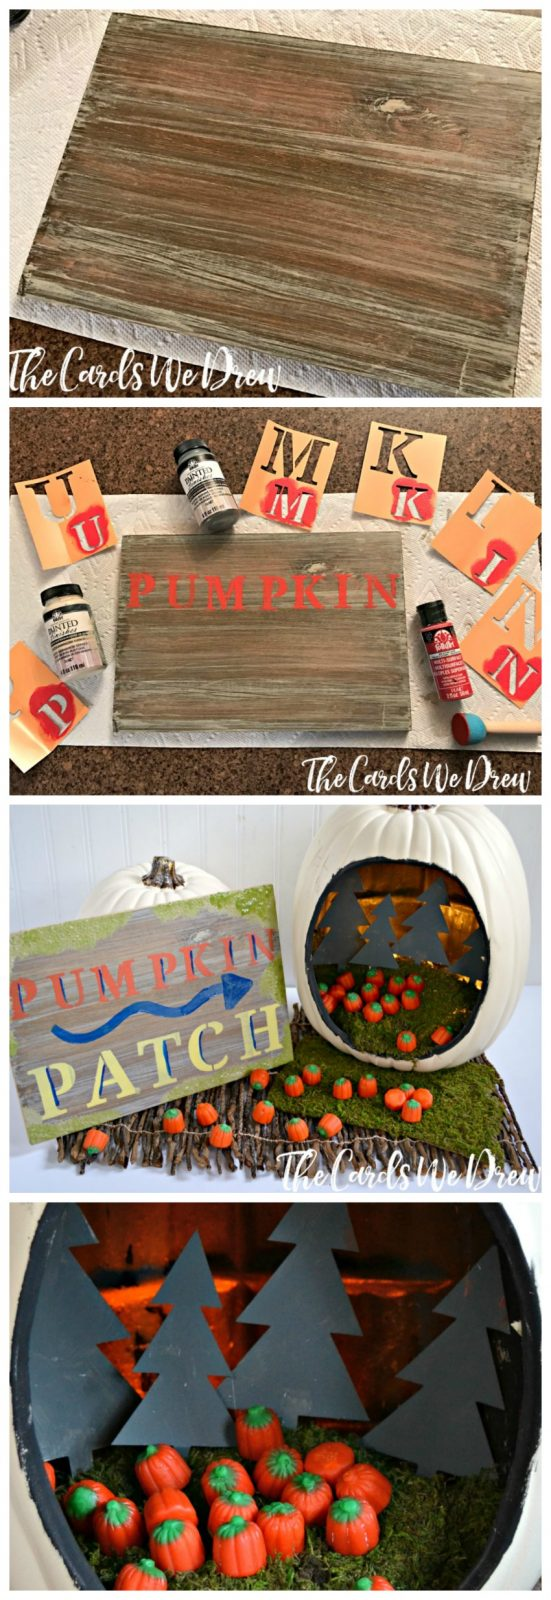 pumpkin-patch-diorama-and-barnwood-sign-from-the-cards-we-drew